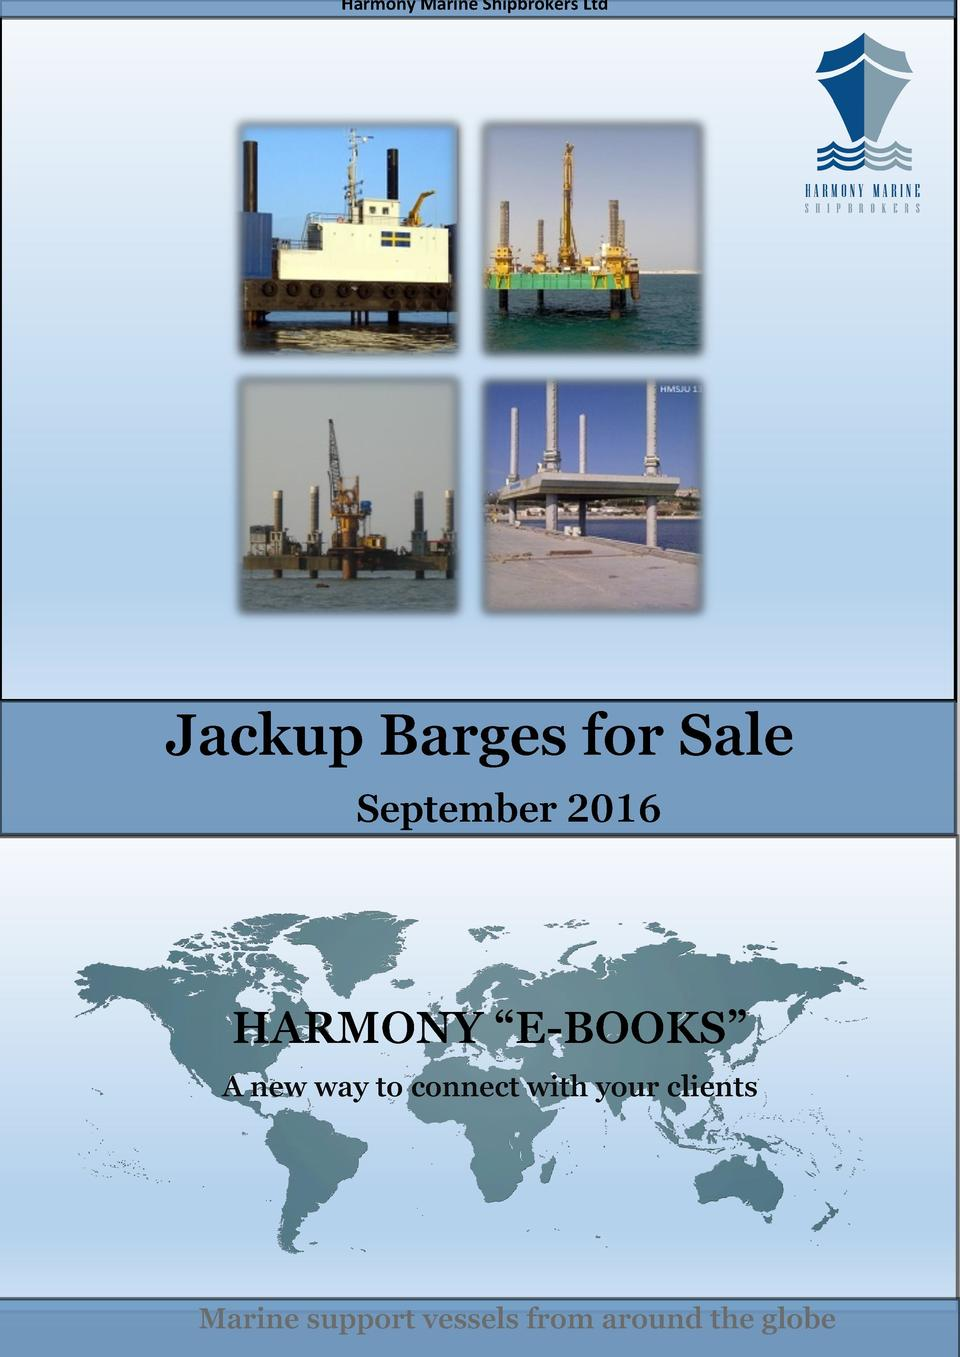 Harmony Marine Shipbrokers Ltd  Jackup Barges for Sale September 2016  HARMONY    E-BOOKS    A new way to connect with you...